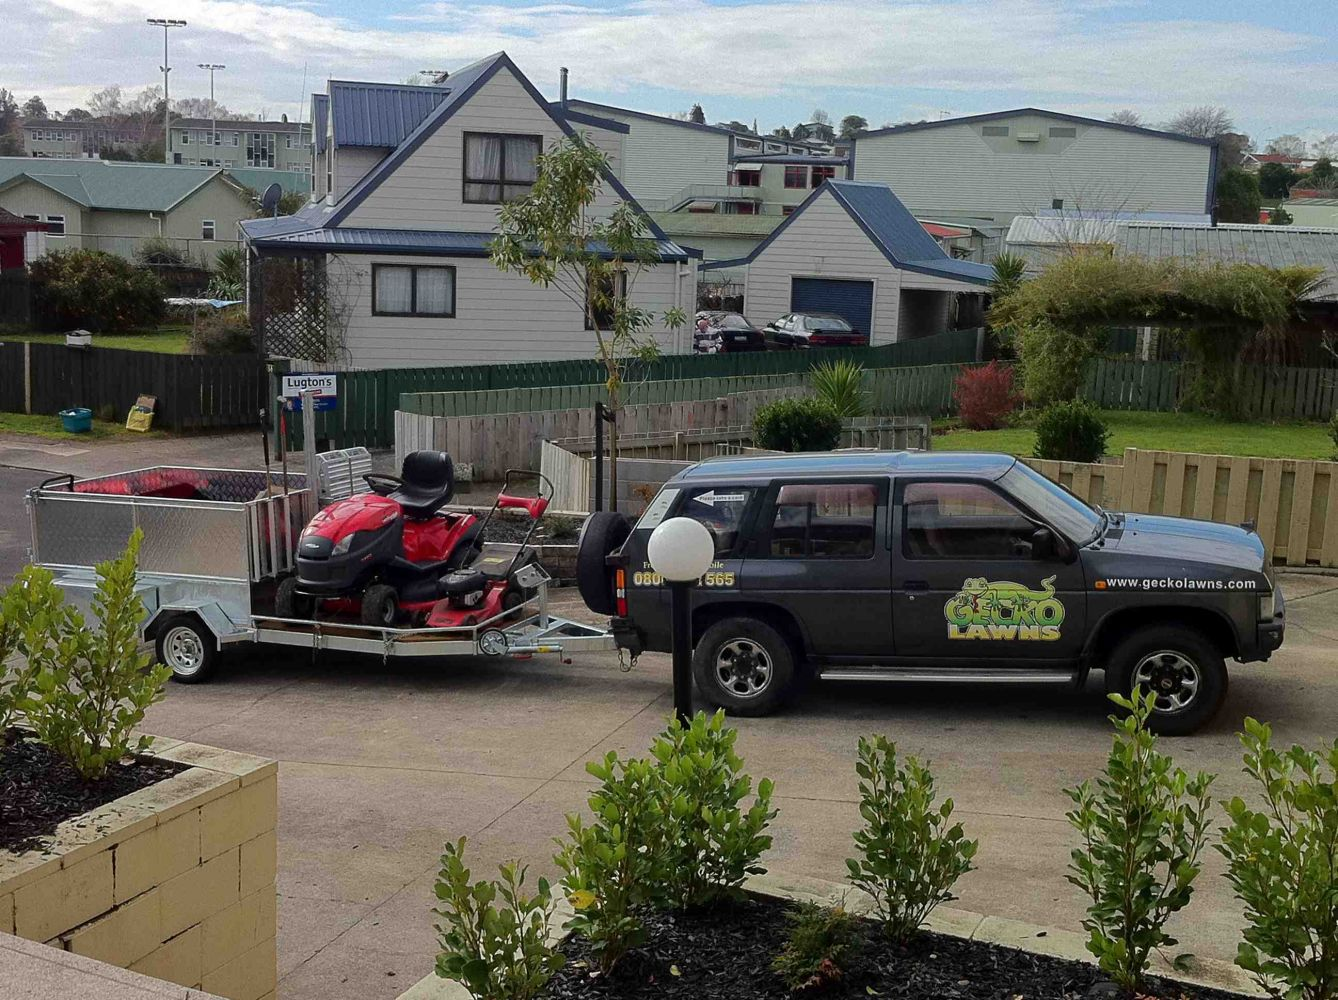 For a friendly and reliable lawn service in Hamilton